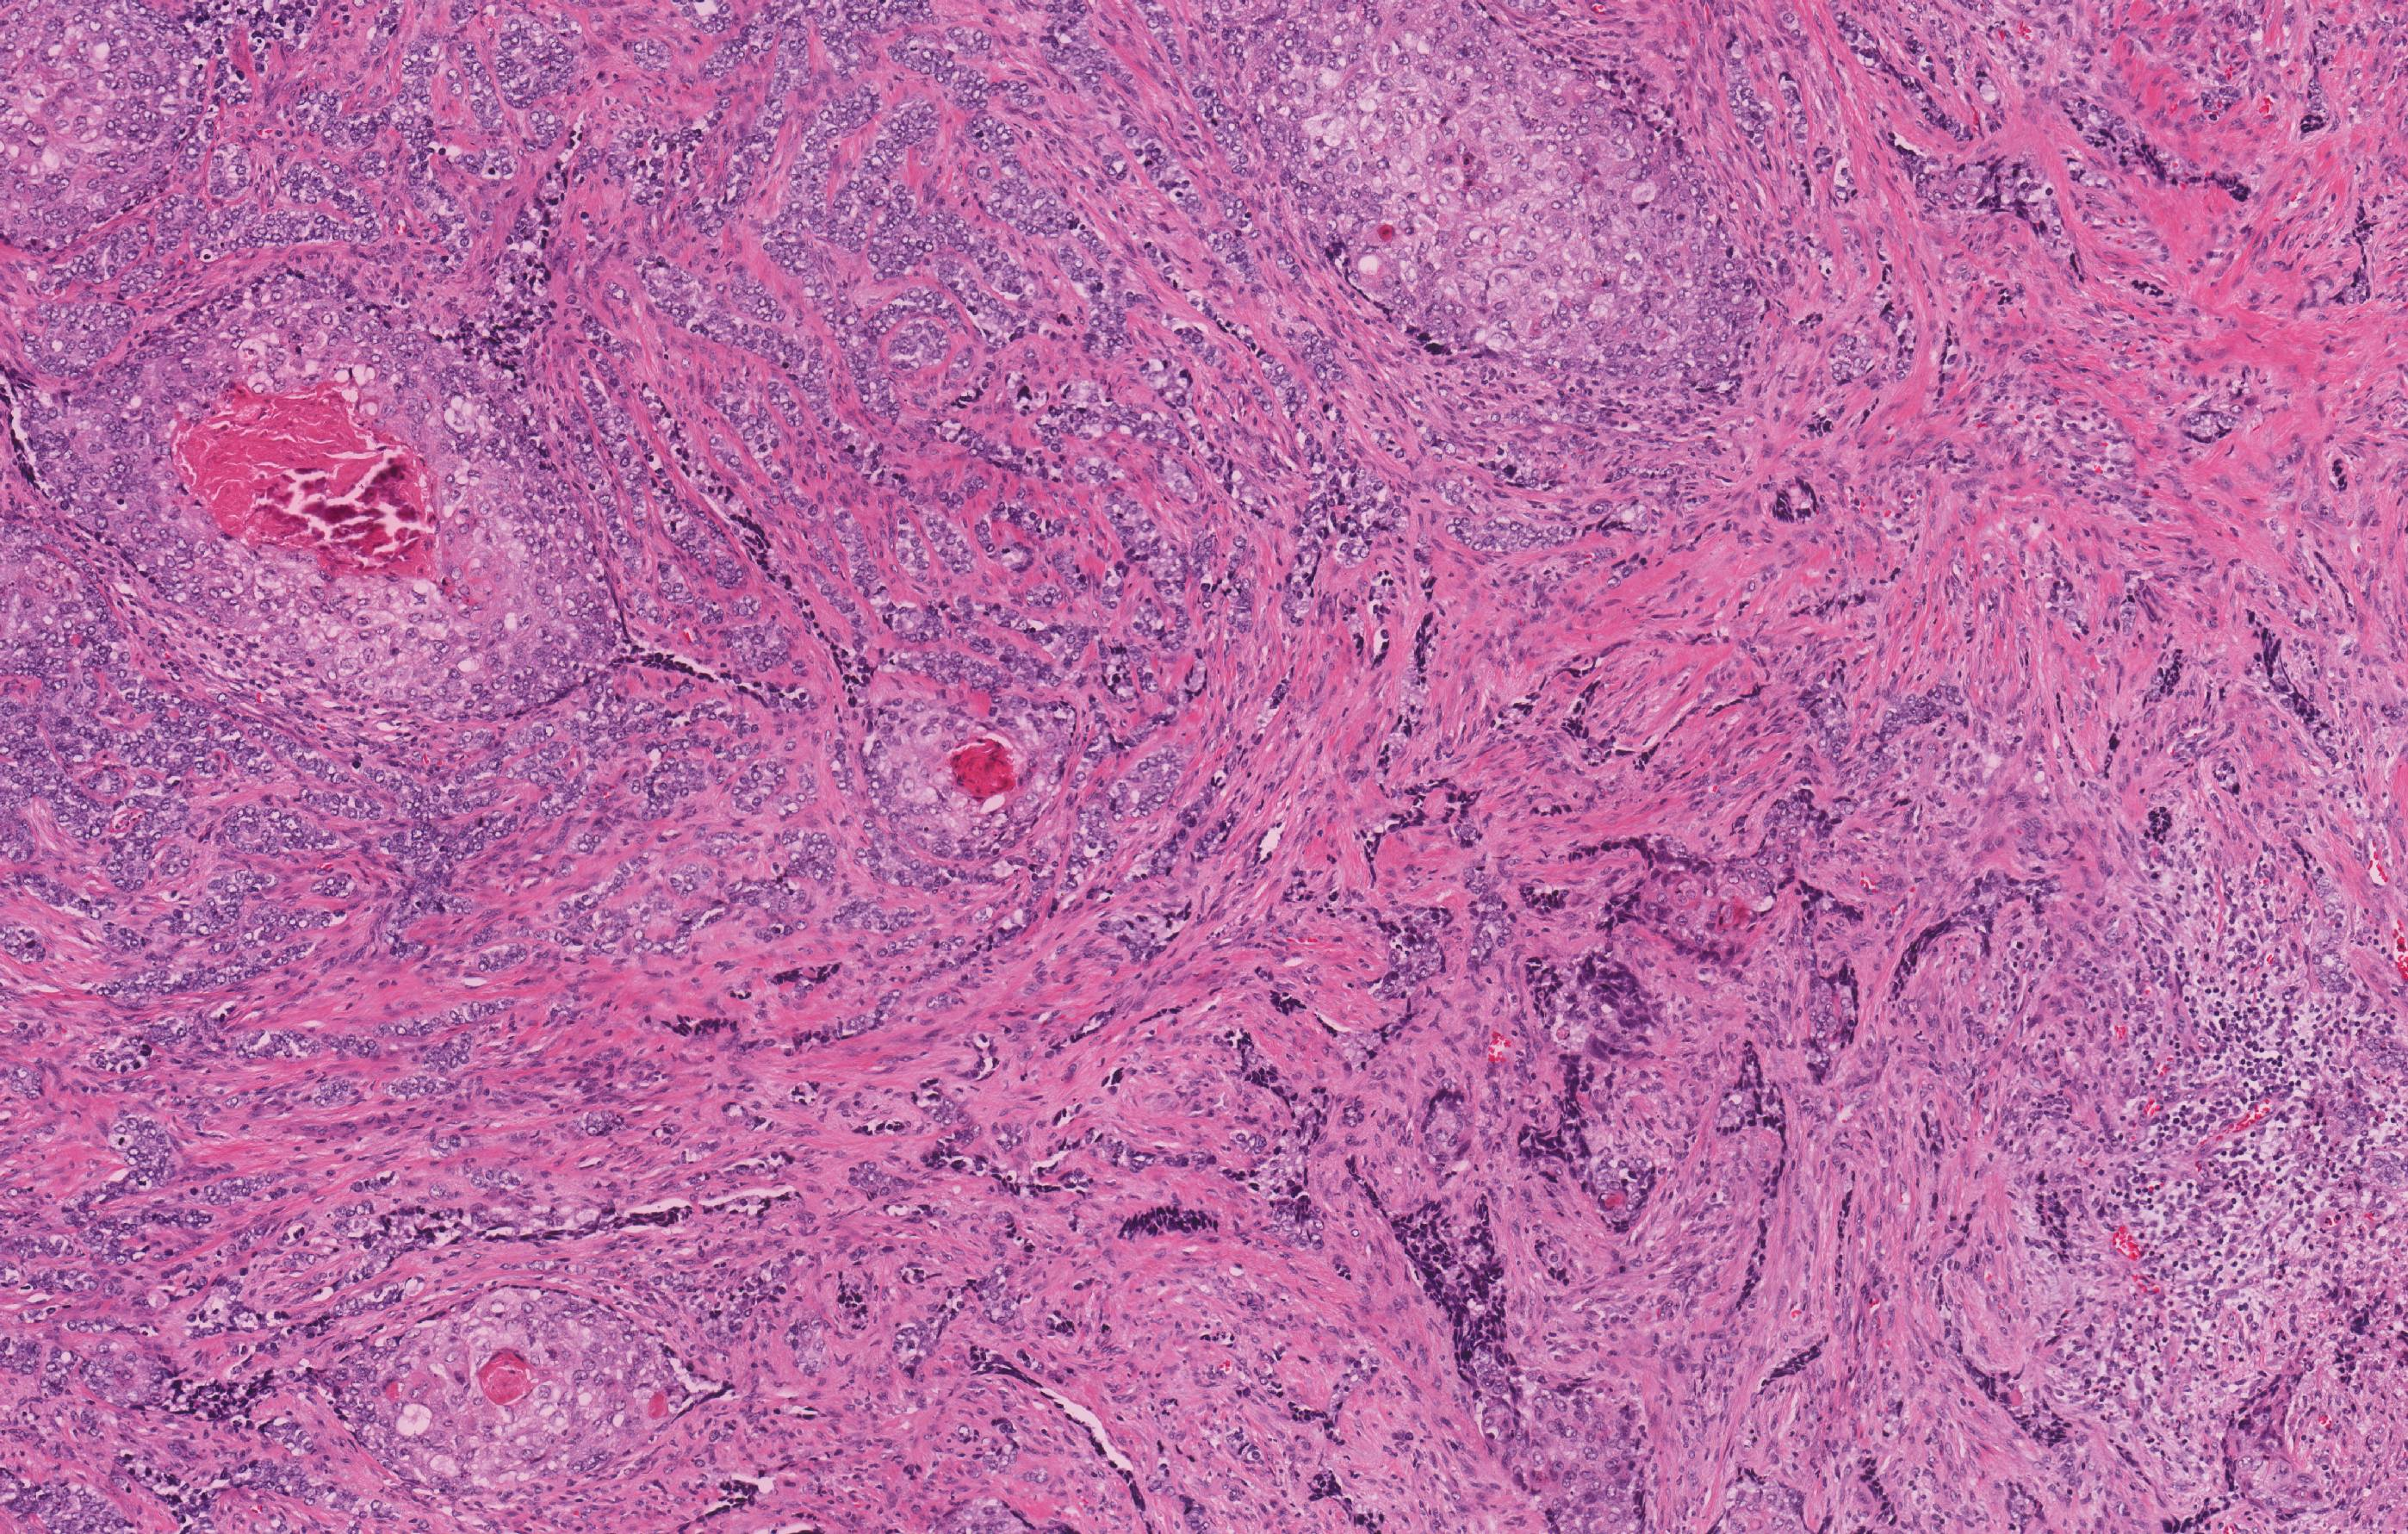 Primary intraosseous carcinoma, NOS